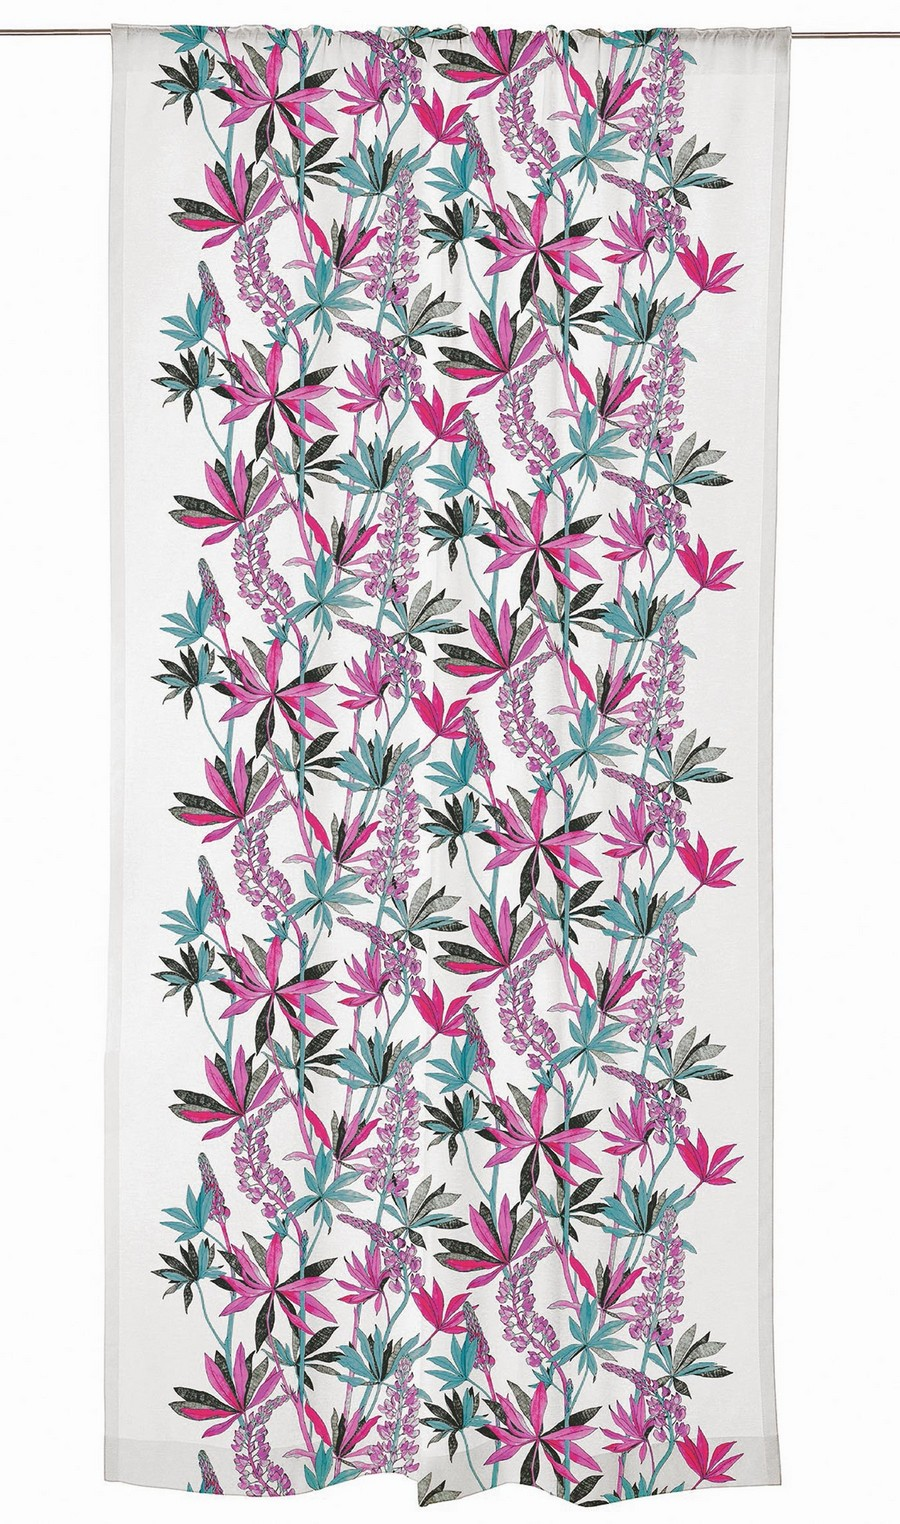 4-5-Lupiini-curtains-from-Connections-collection-by-Vallila-beautiful-home-textile-decor-accessories-summer-2017